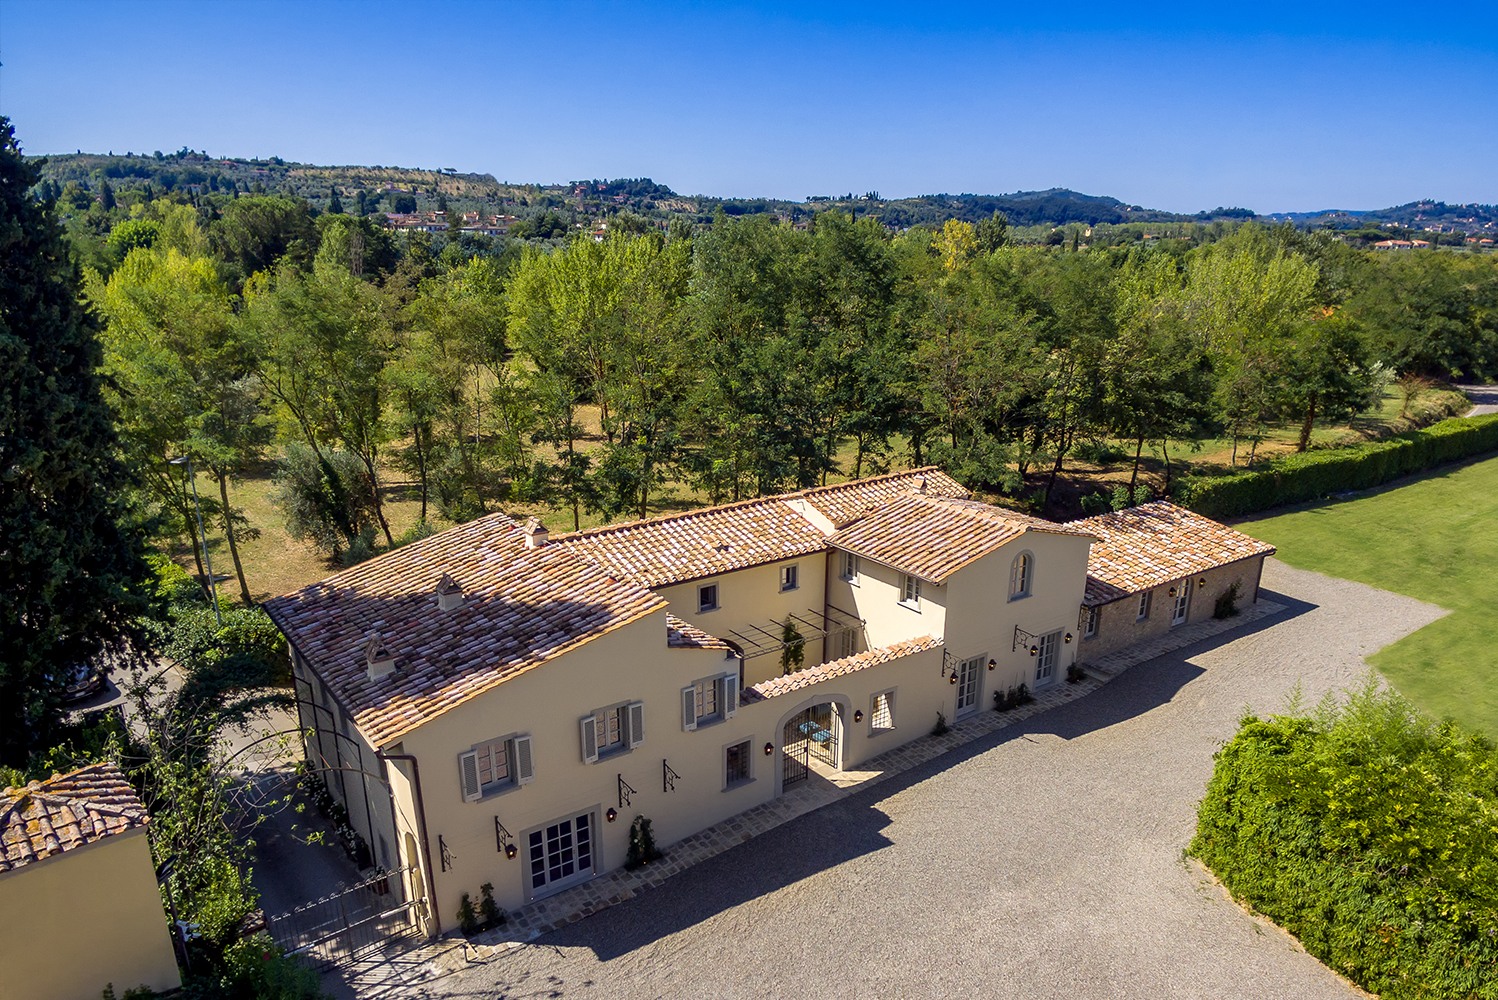 The property was built in the 16th century for a member of the Medici family.